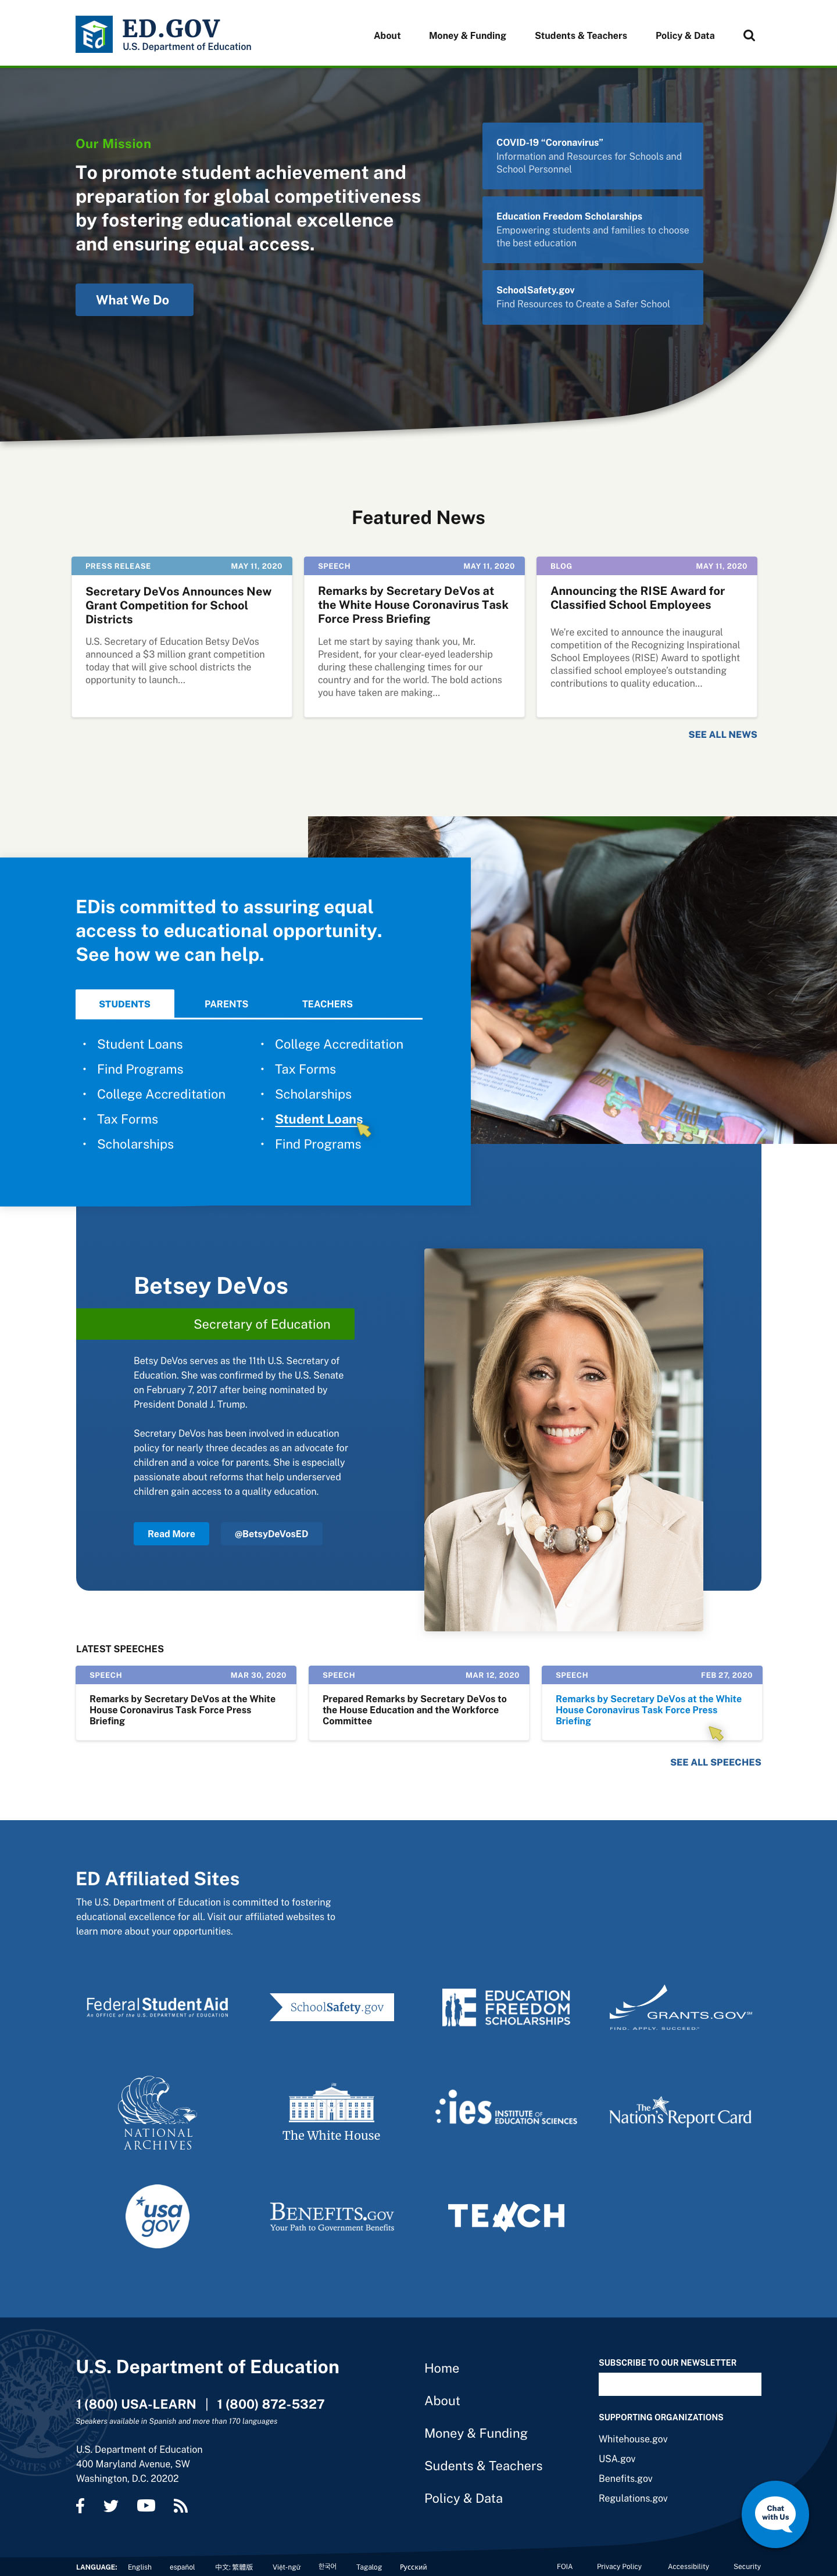 Redesigned landing page for the desktop Department of Education website.